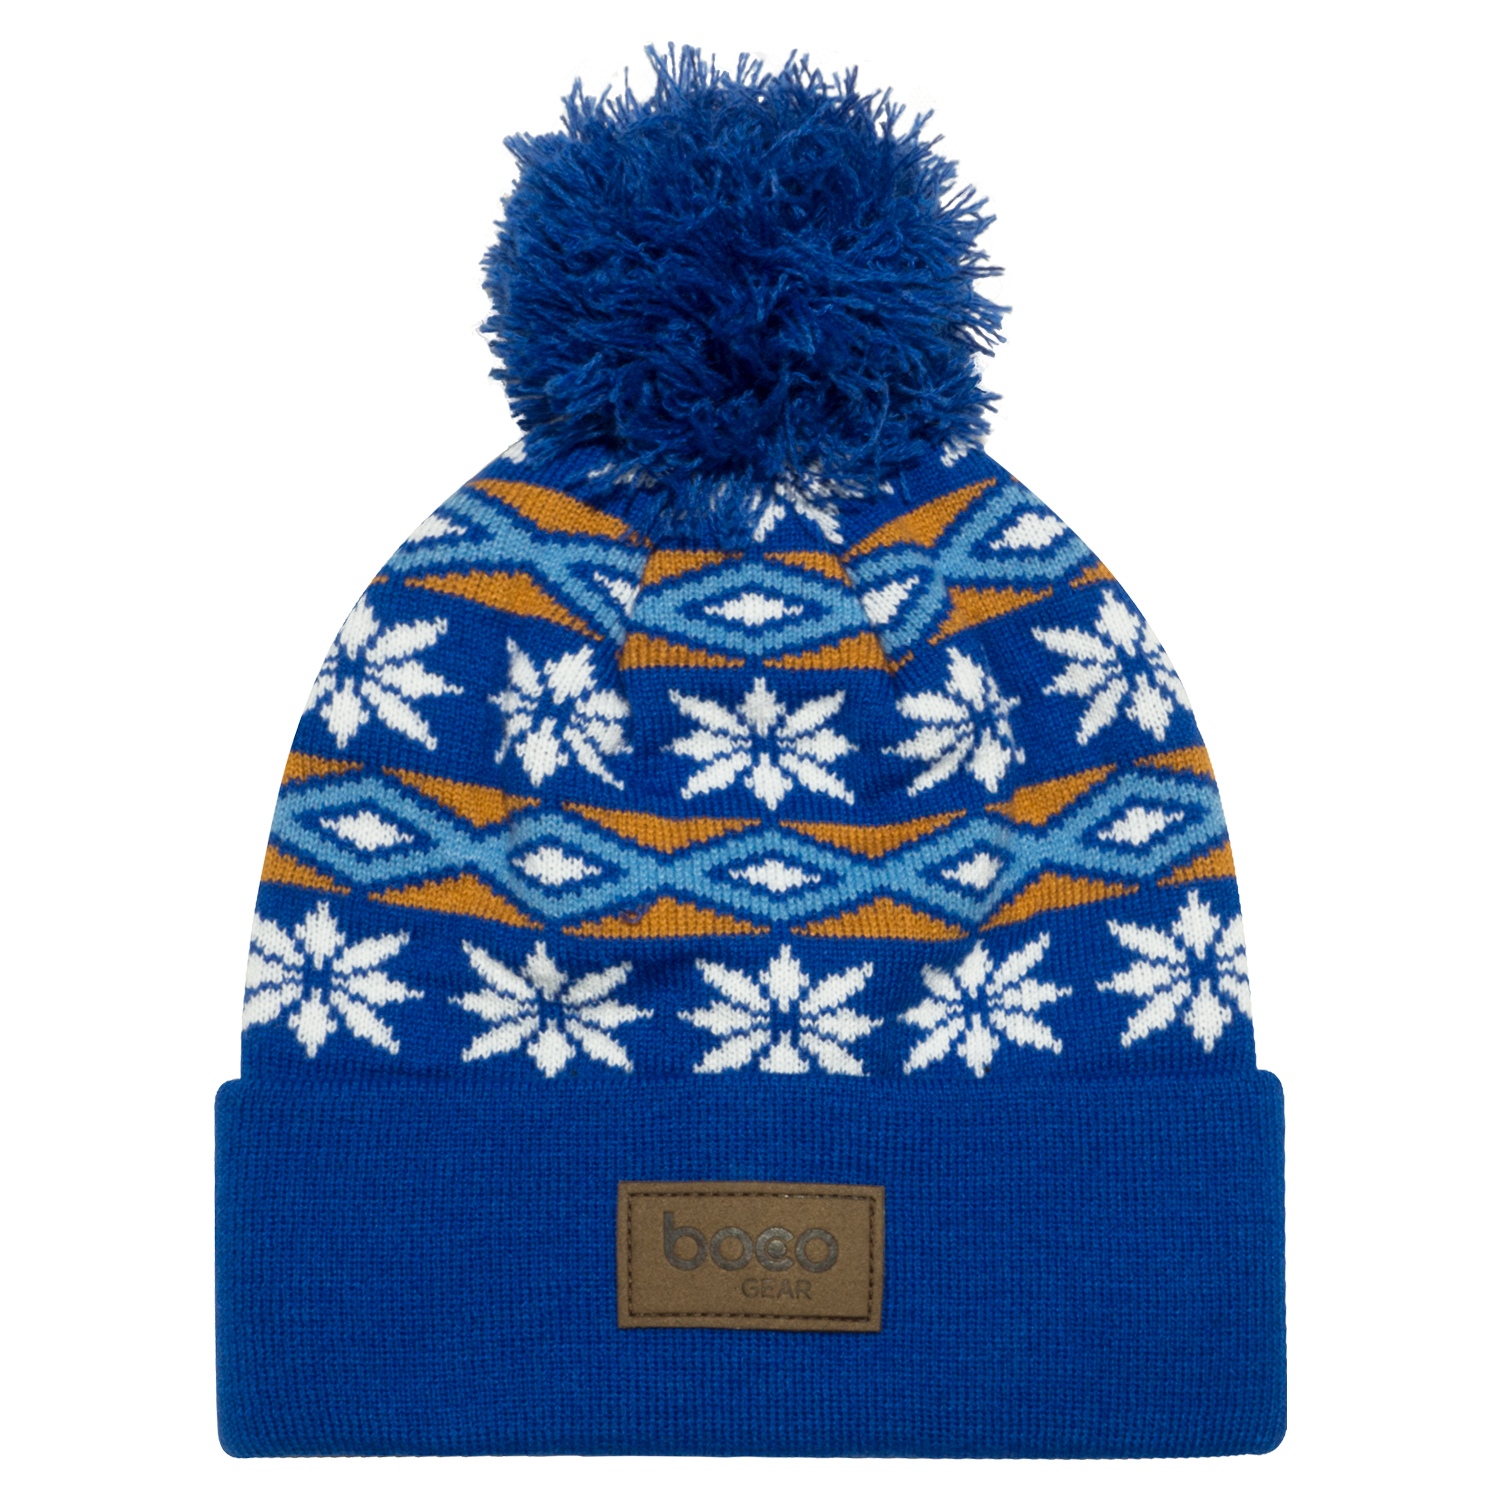 4c4814327f6 Women s Pom Pom Beanie – Blue – Fair Isle – BOCO Gear